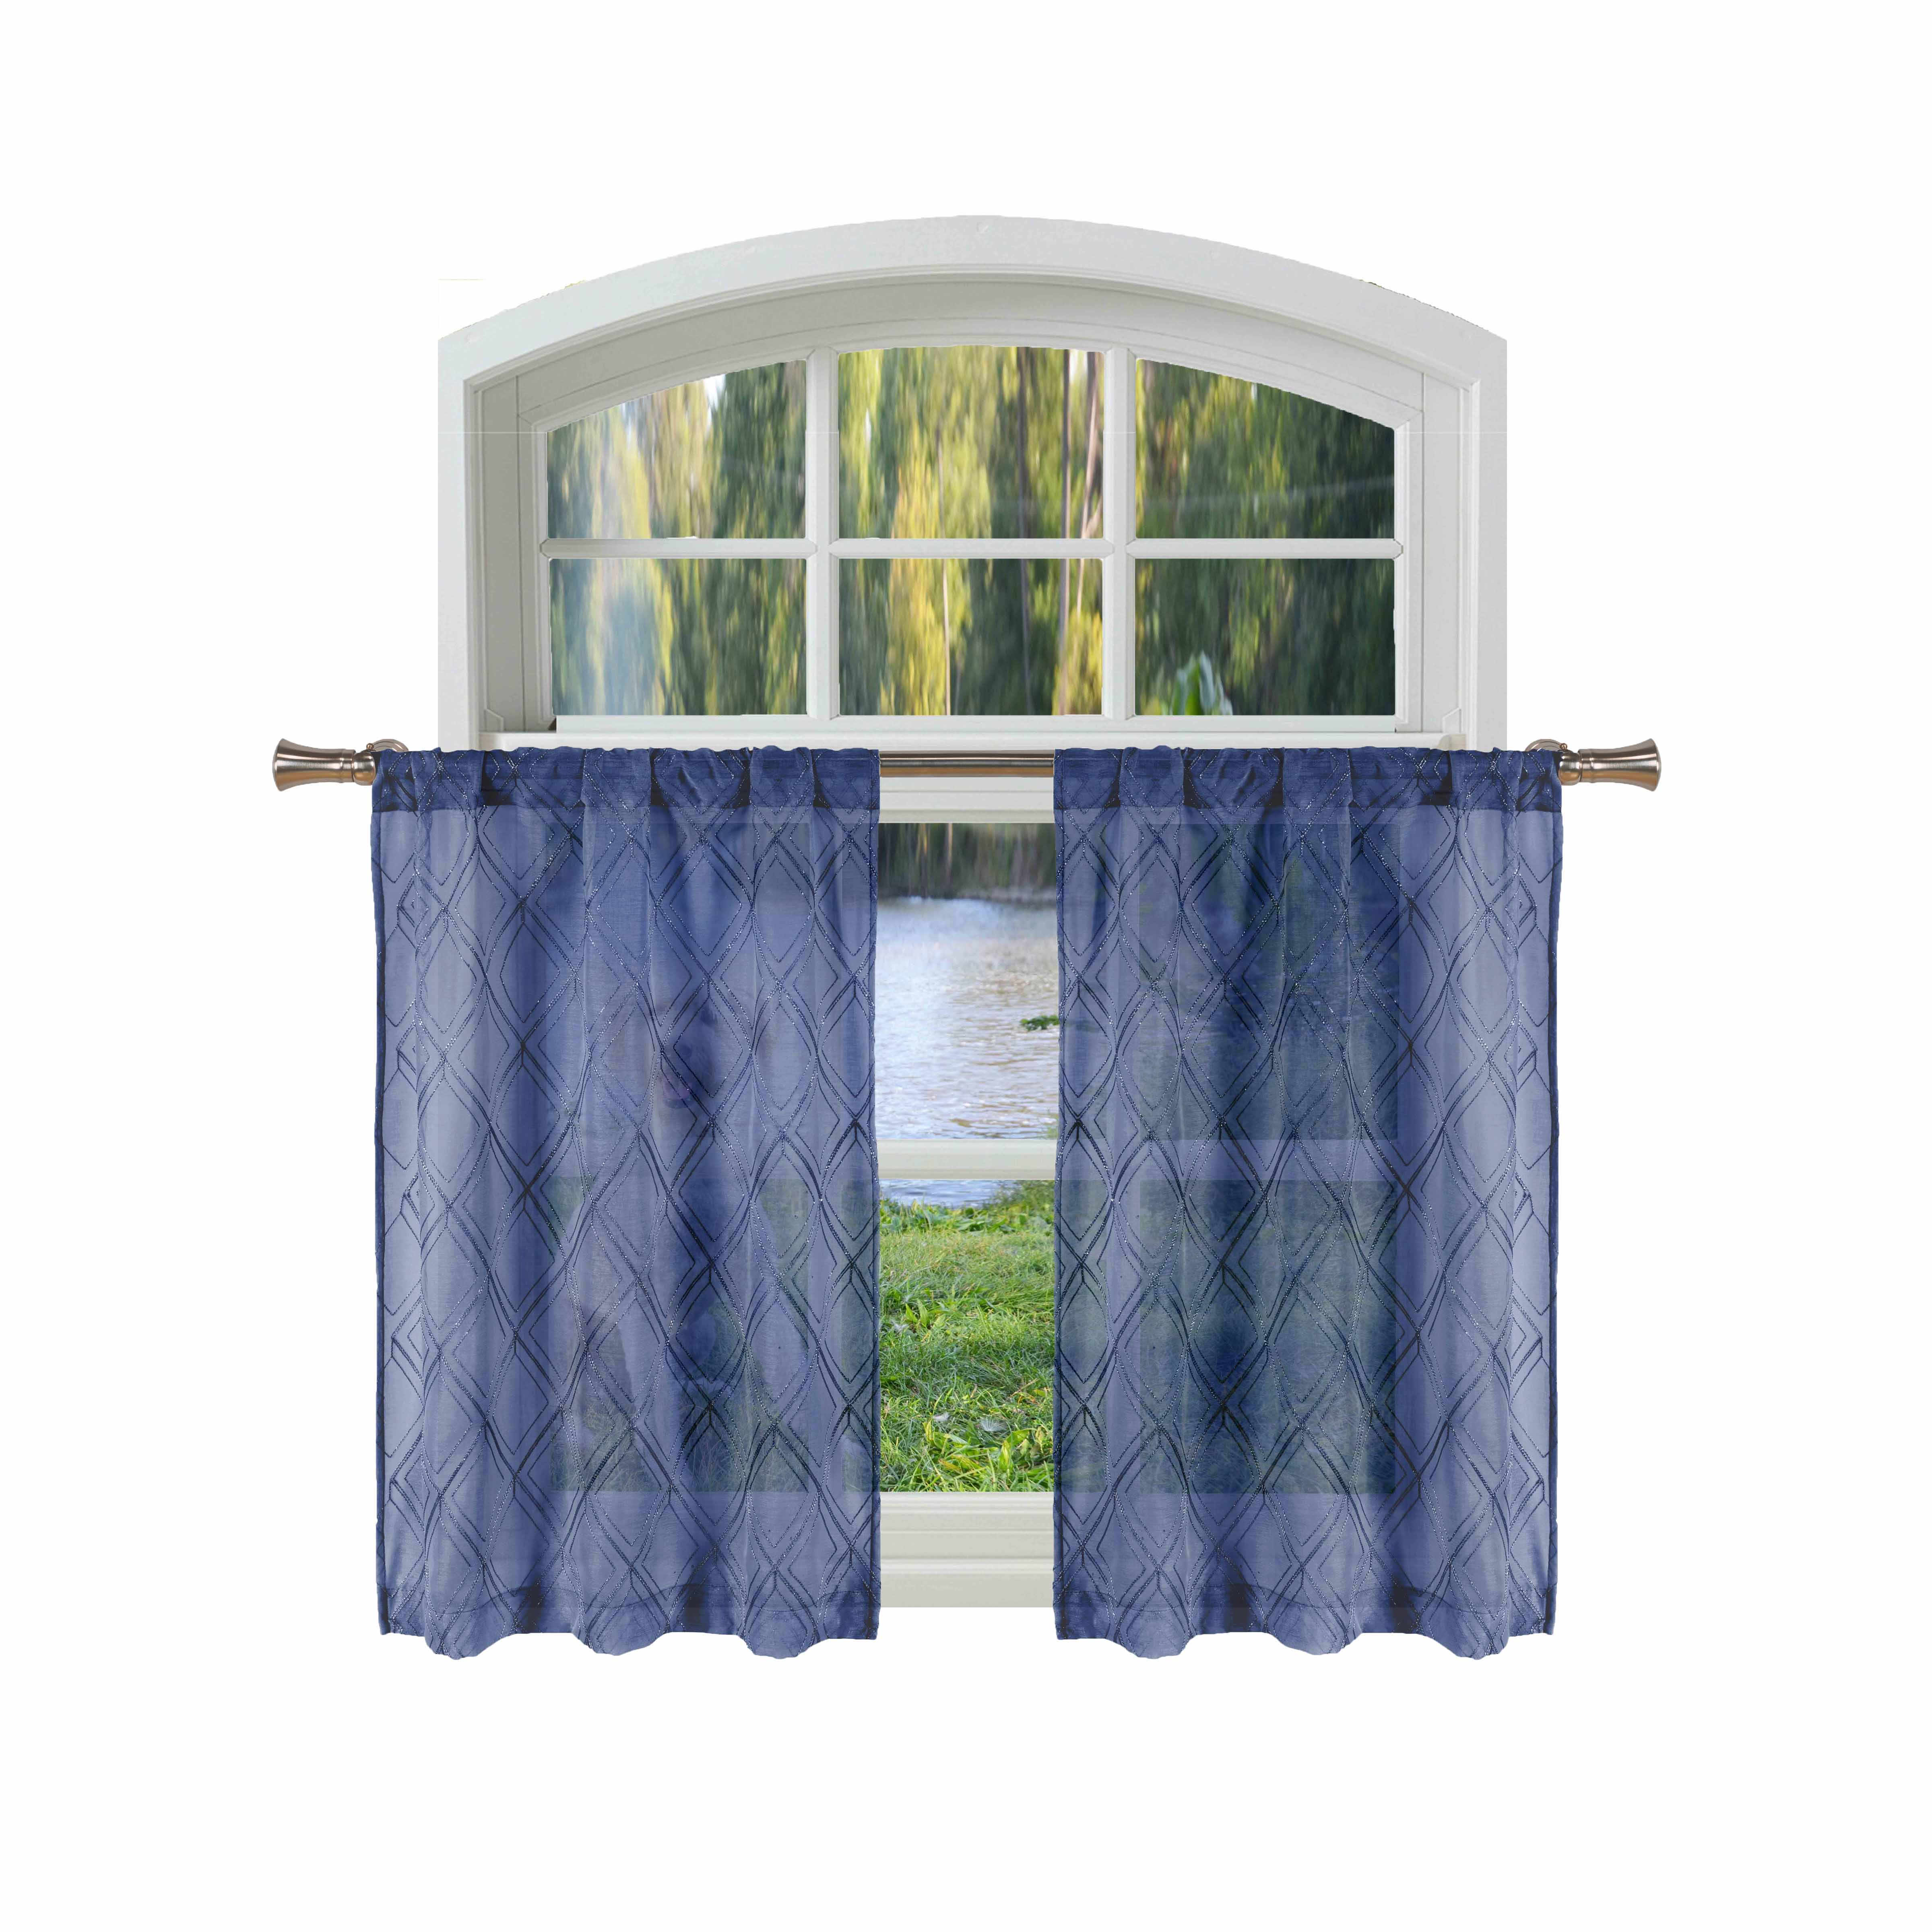 Bathroom And More Adley Collection Navy Blue Sheer Window Curtain Valance Embroidered Diamond Trellis Design With Navy Blue And Metallic Silver Thread Single 1 Valance 56in W X 15in L Walmart Com